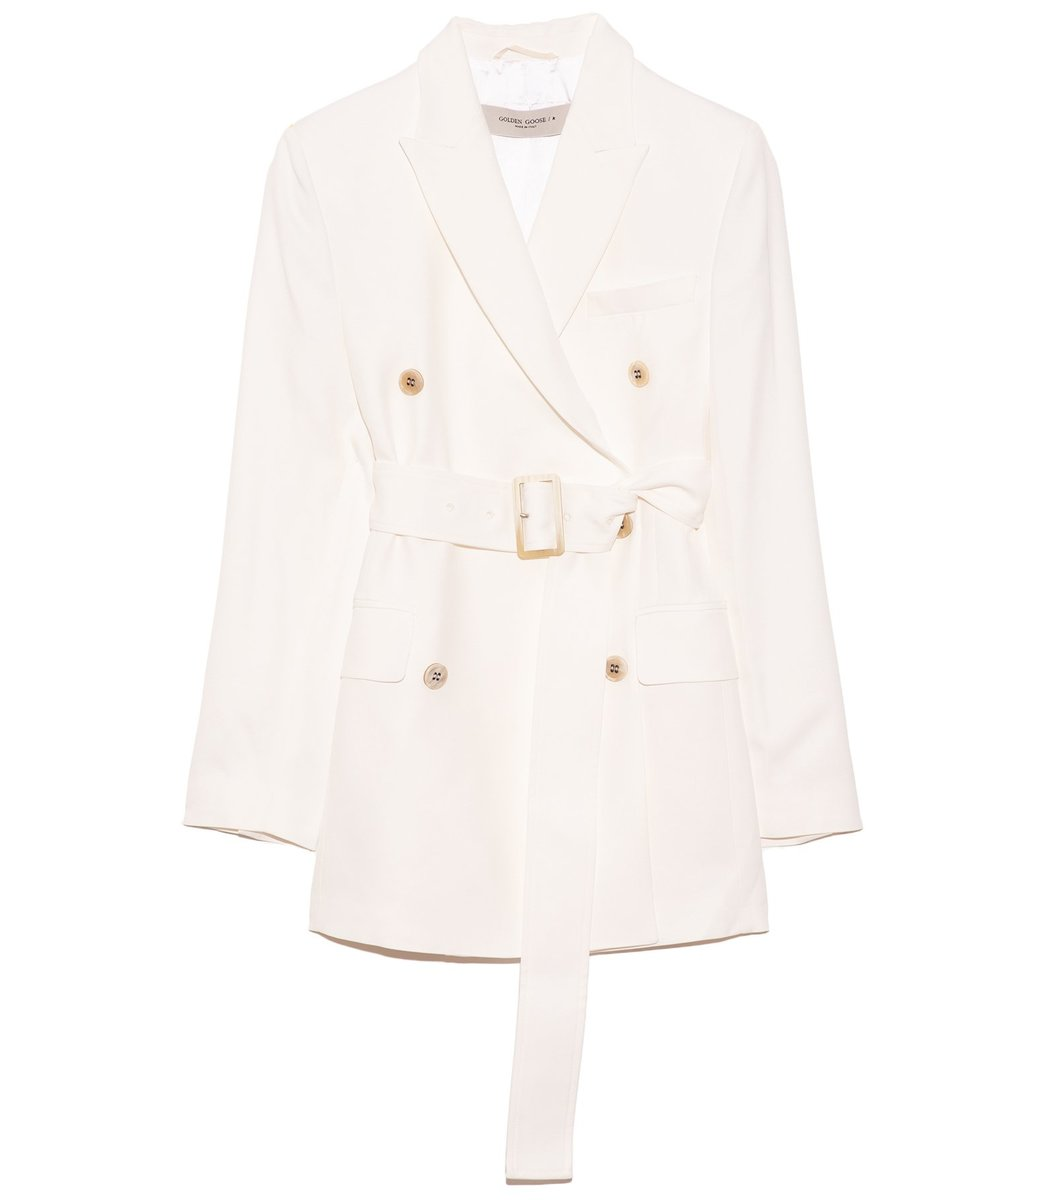 Golden Goose Clizia Blazer with Belt in Optic White